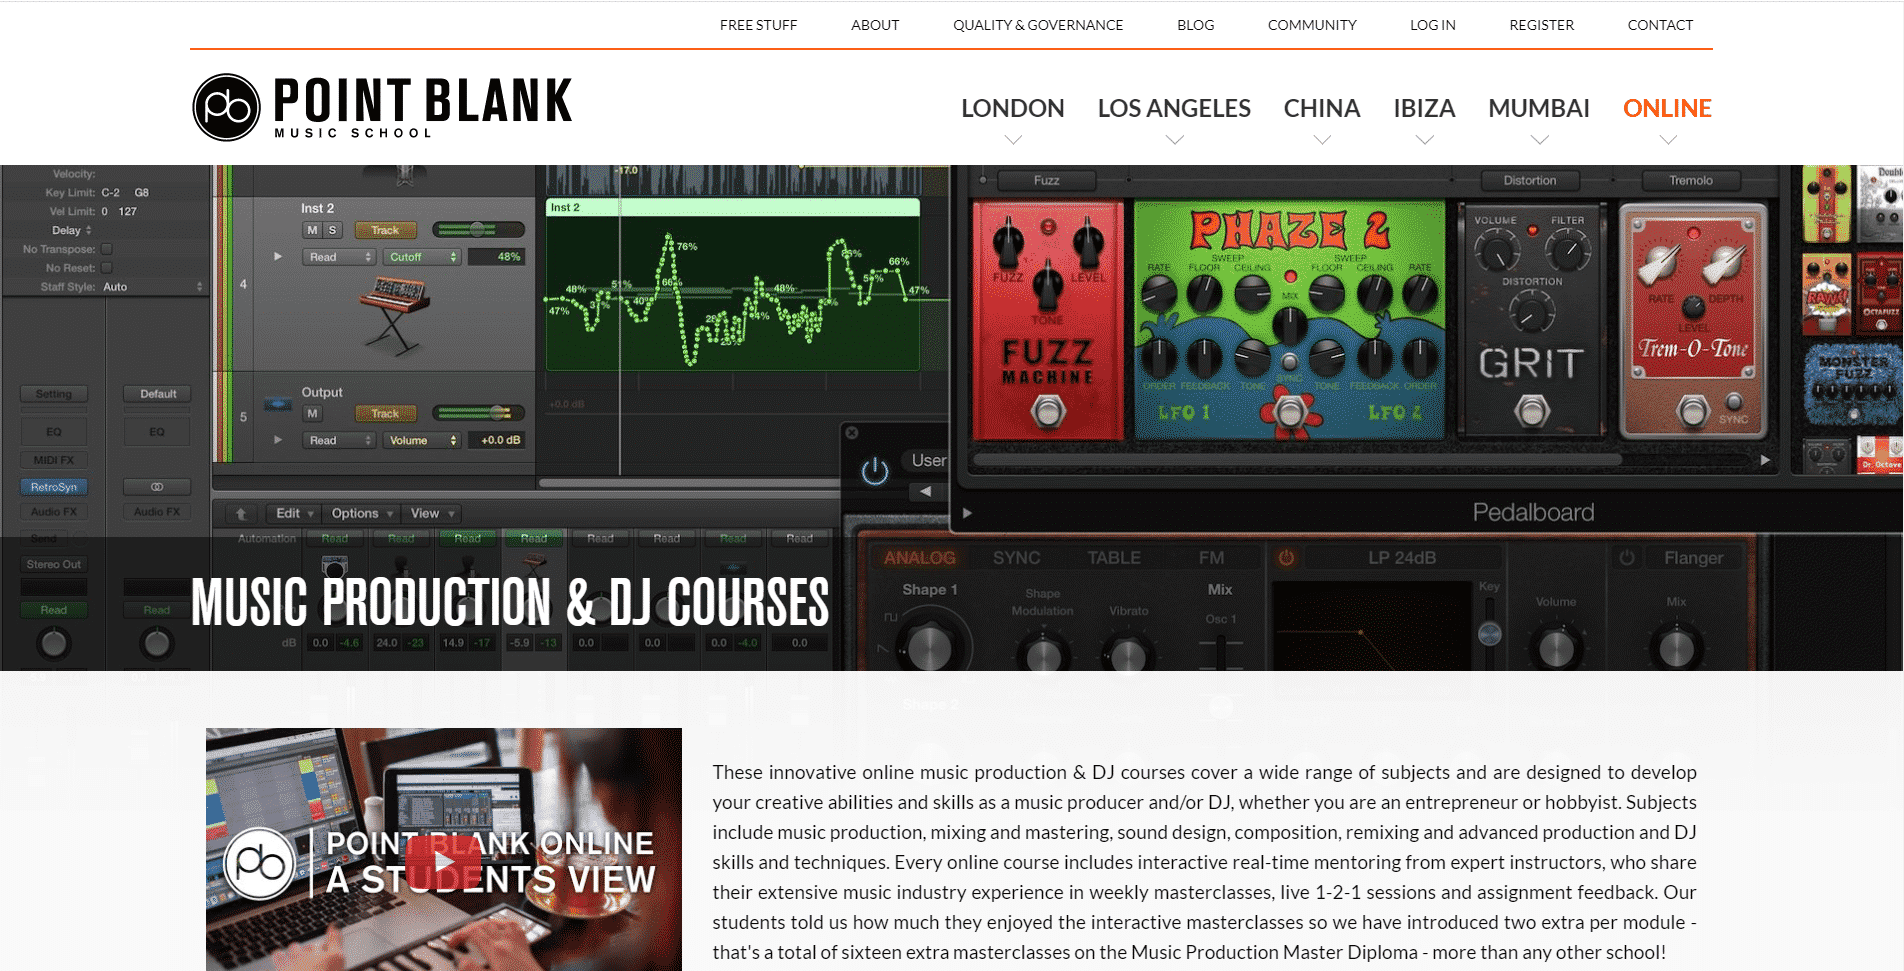 Pointblank Music School